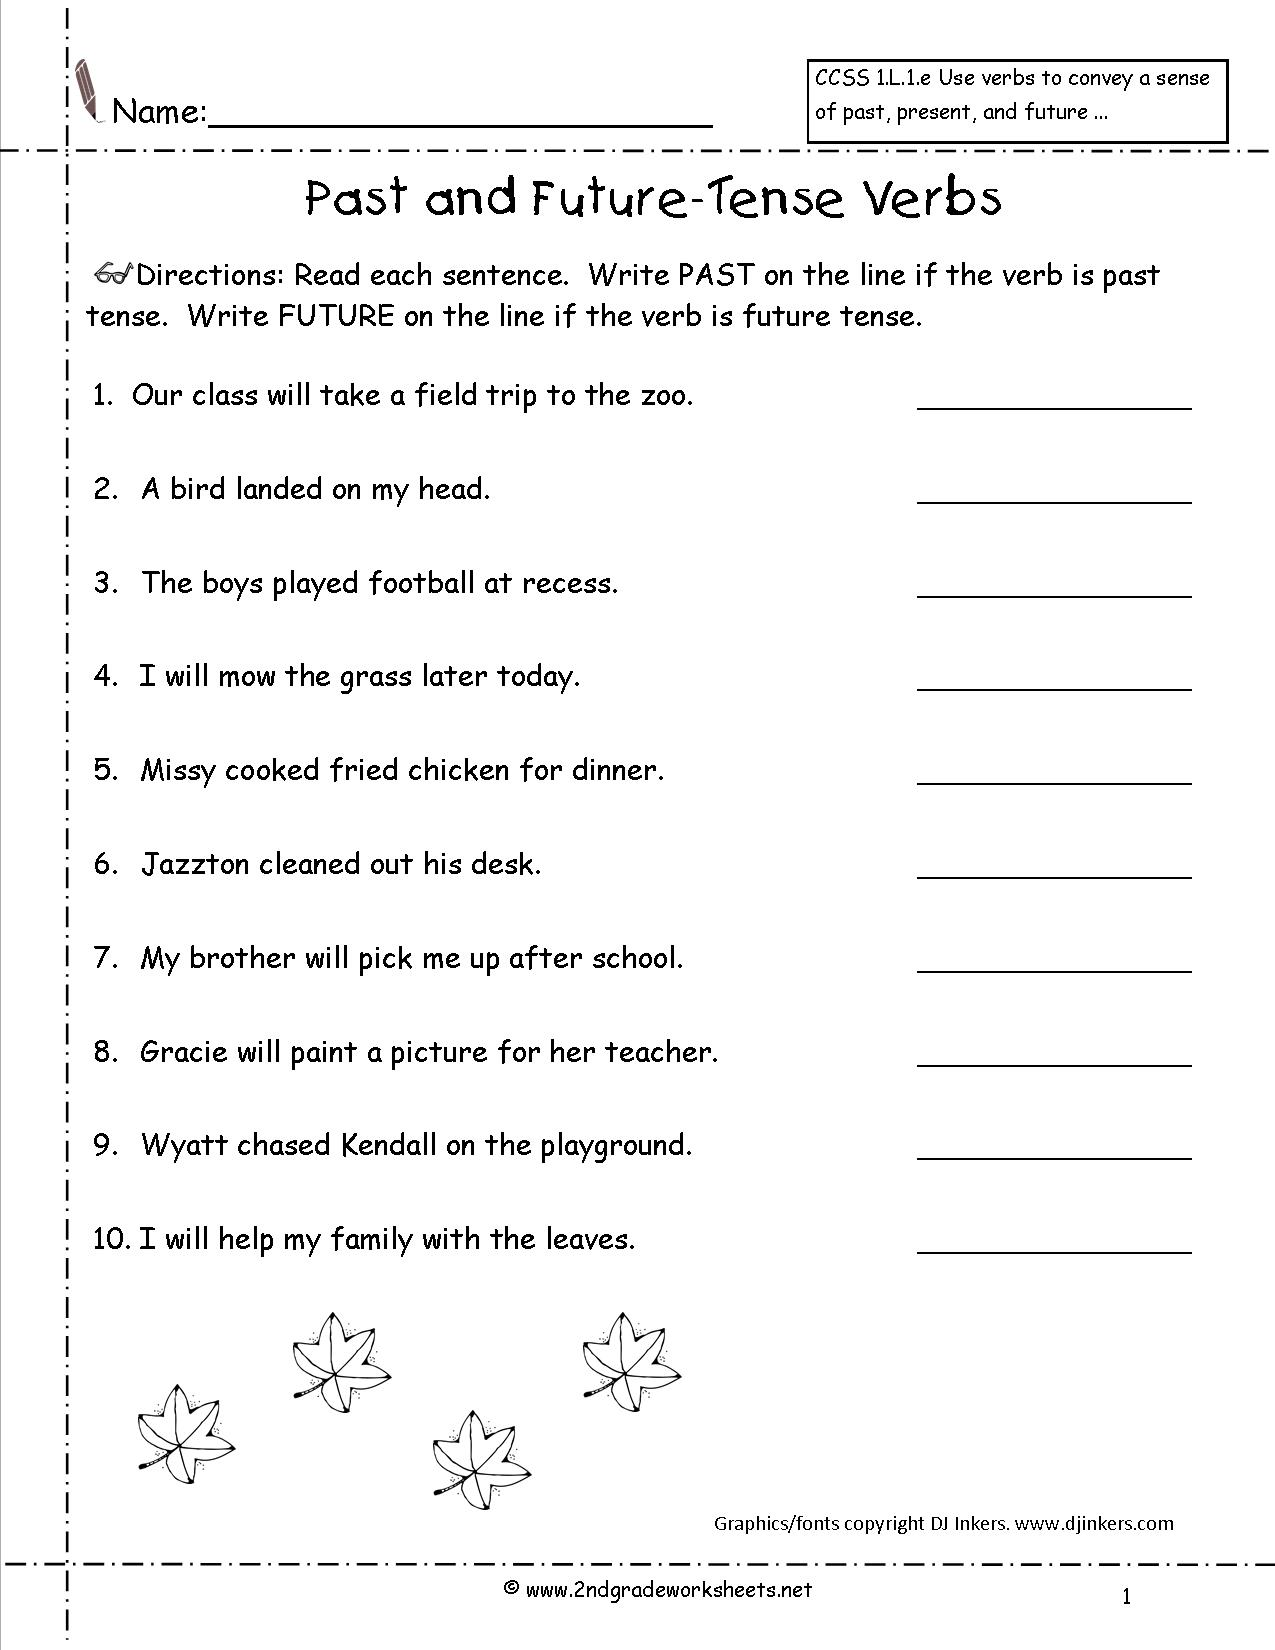 Worksheet Past Present Future Simple Tense